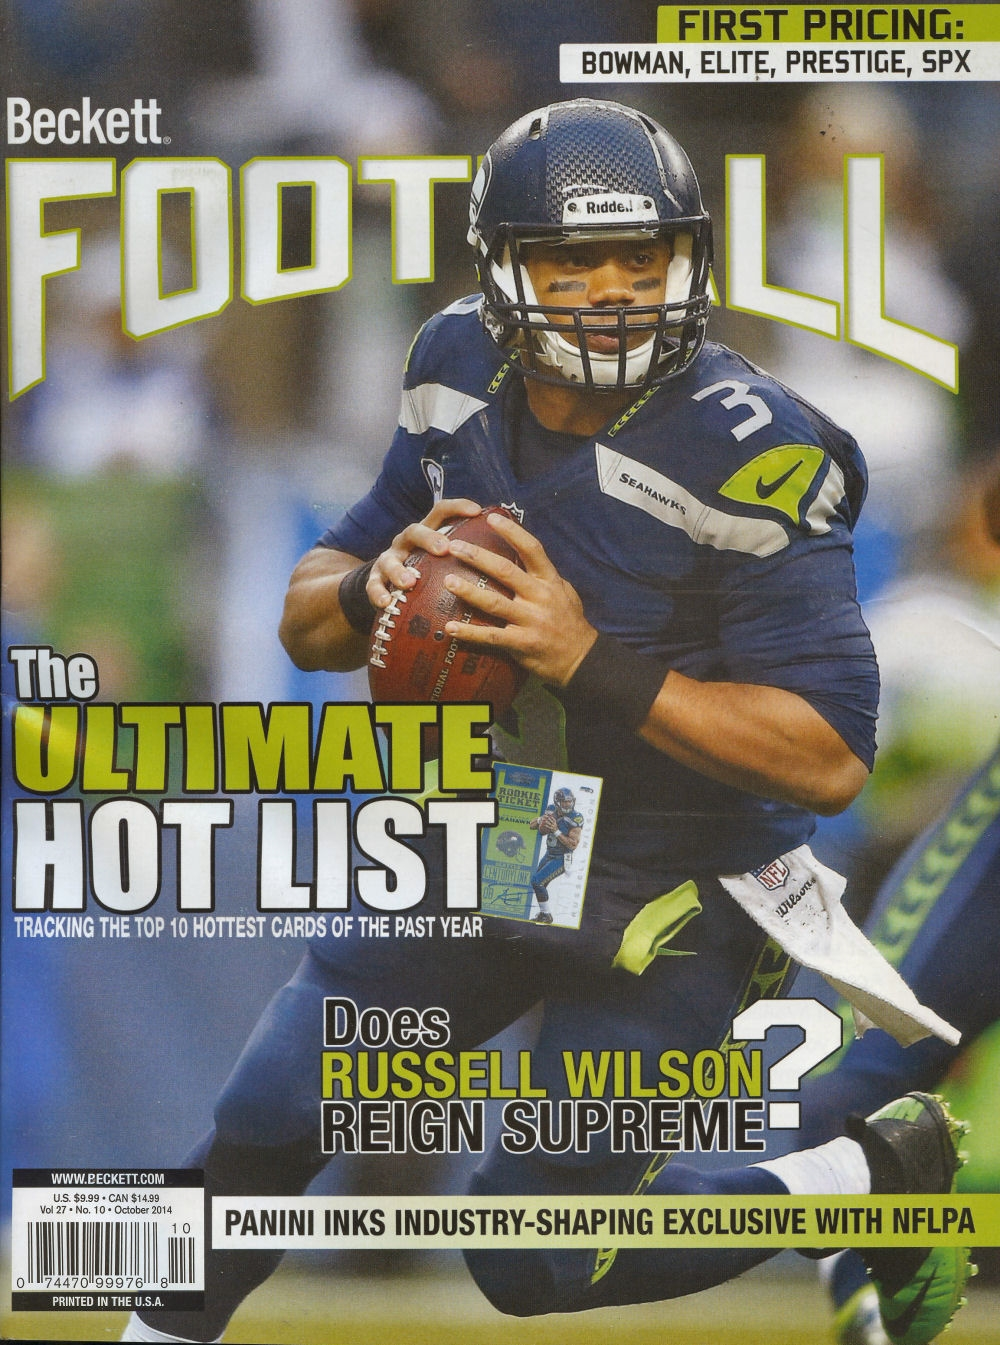 2014 beckett football monthly price guide 285 october